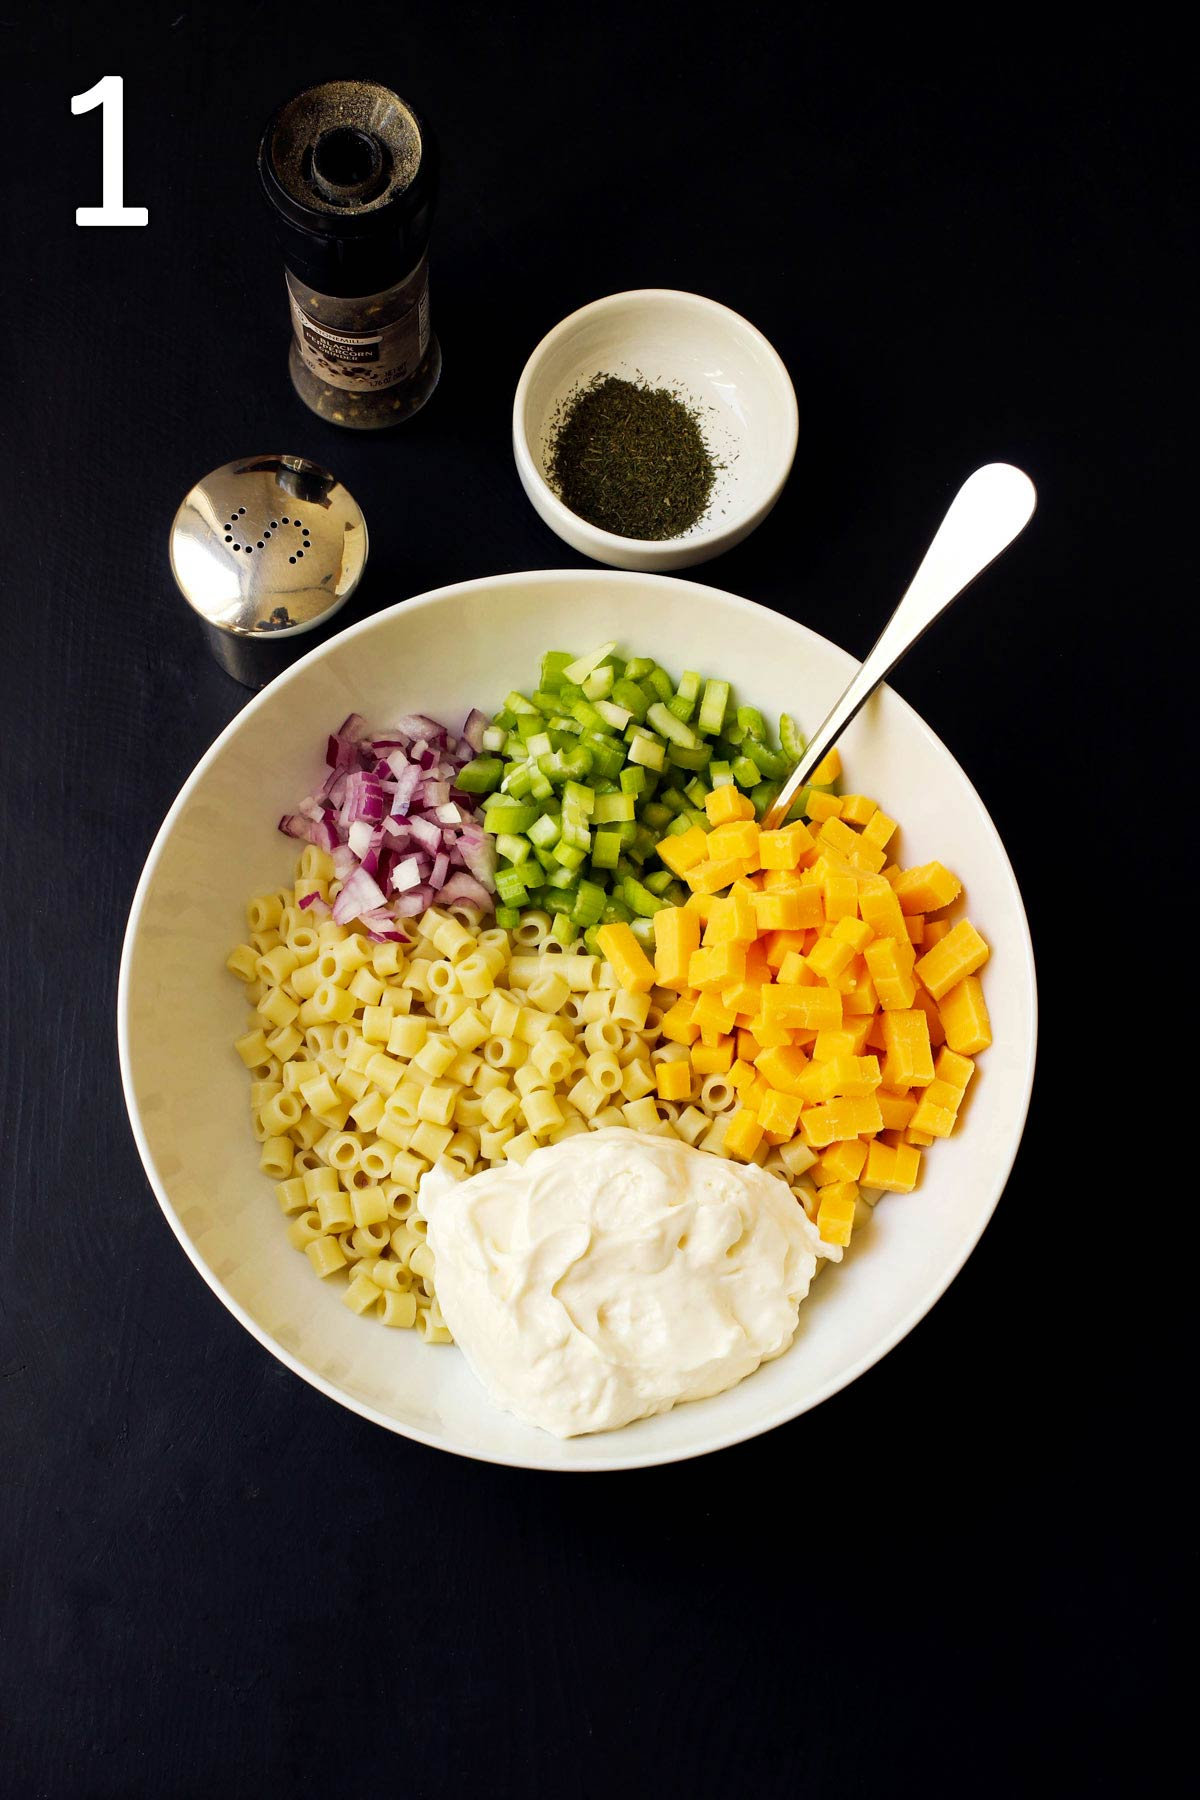 macaroni , mayo, cheese, onion, and celery piled into white mixing bowl.